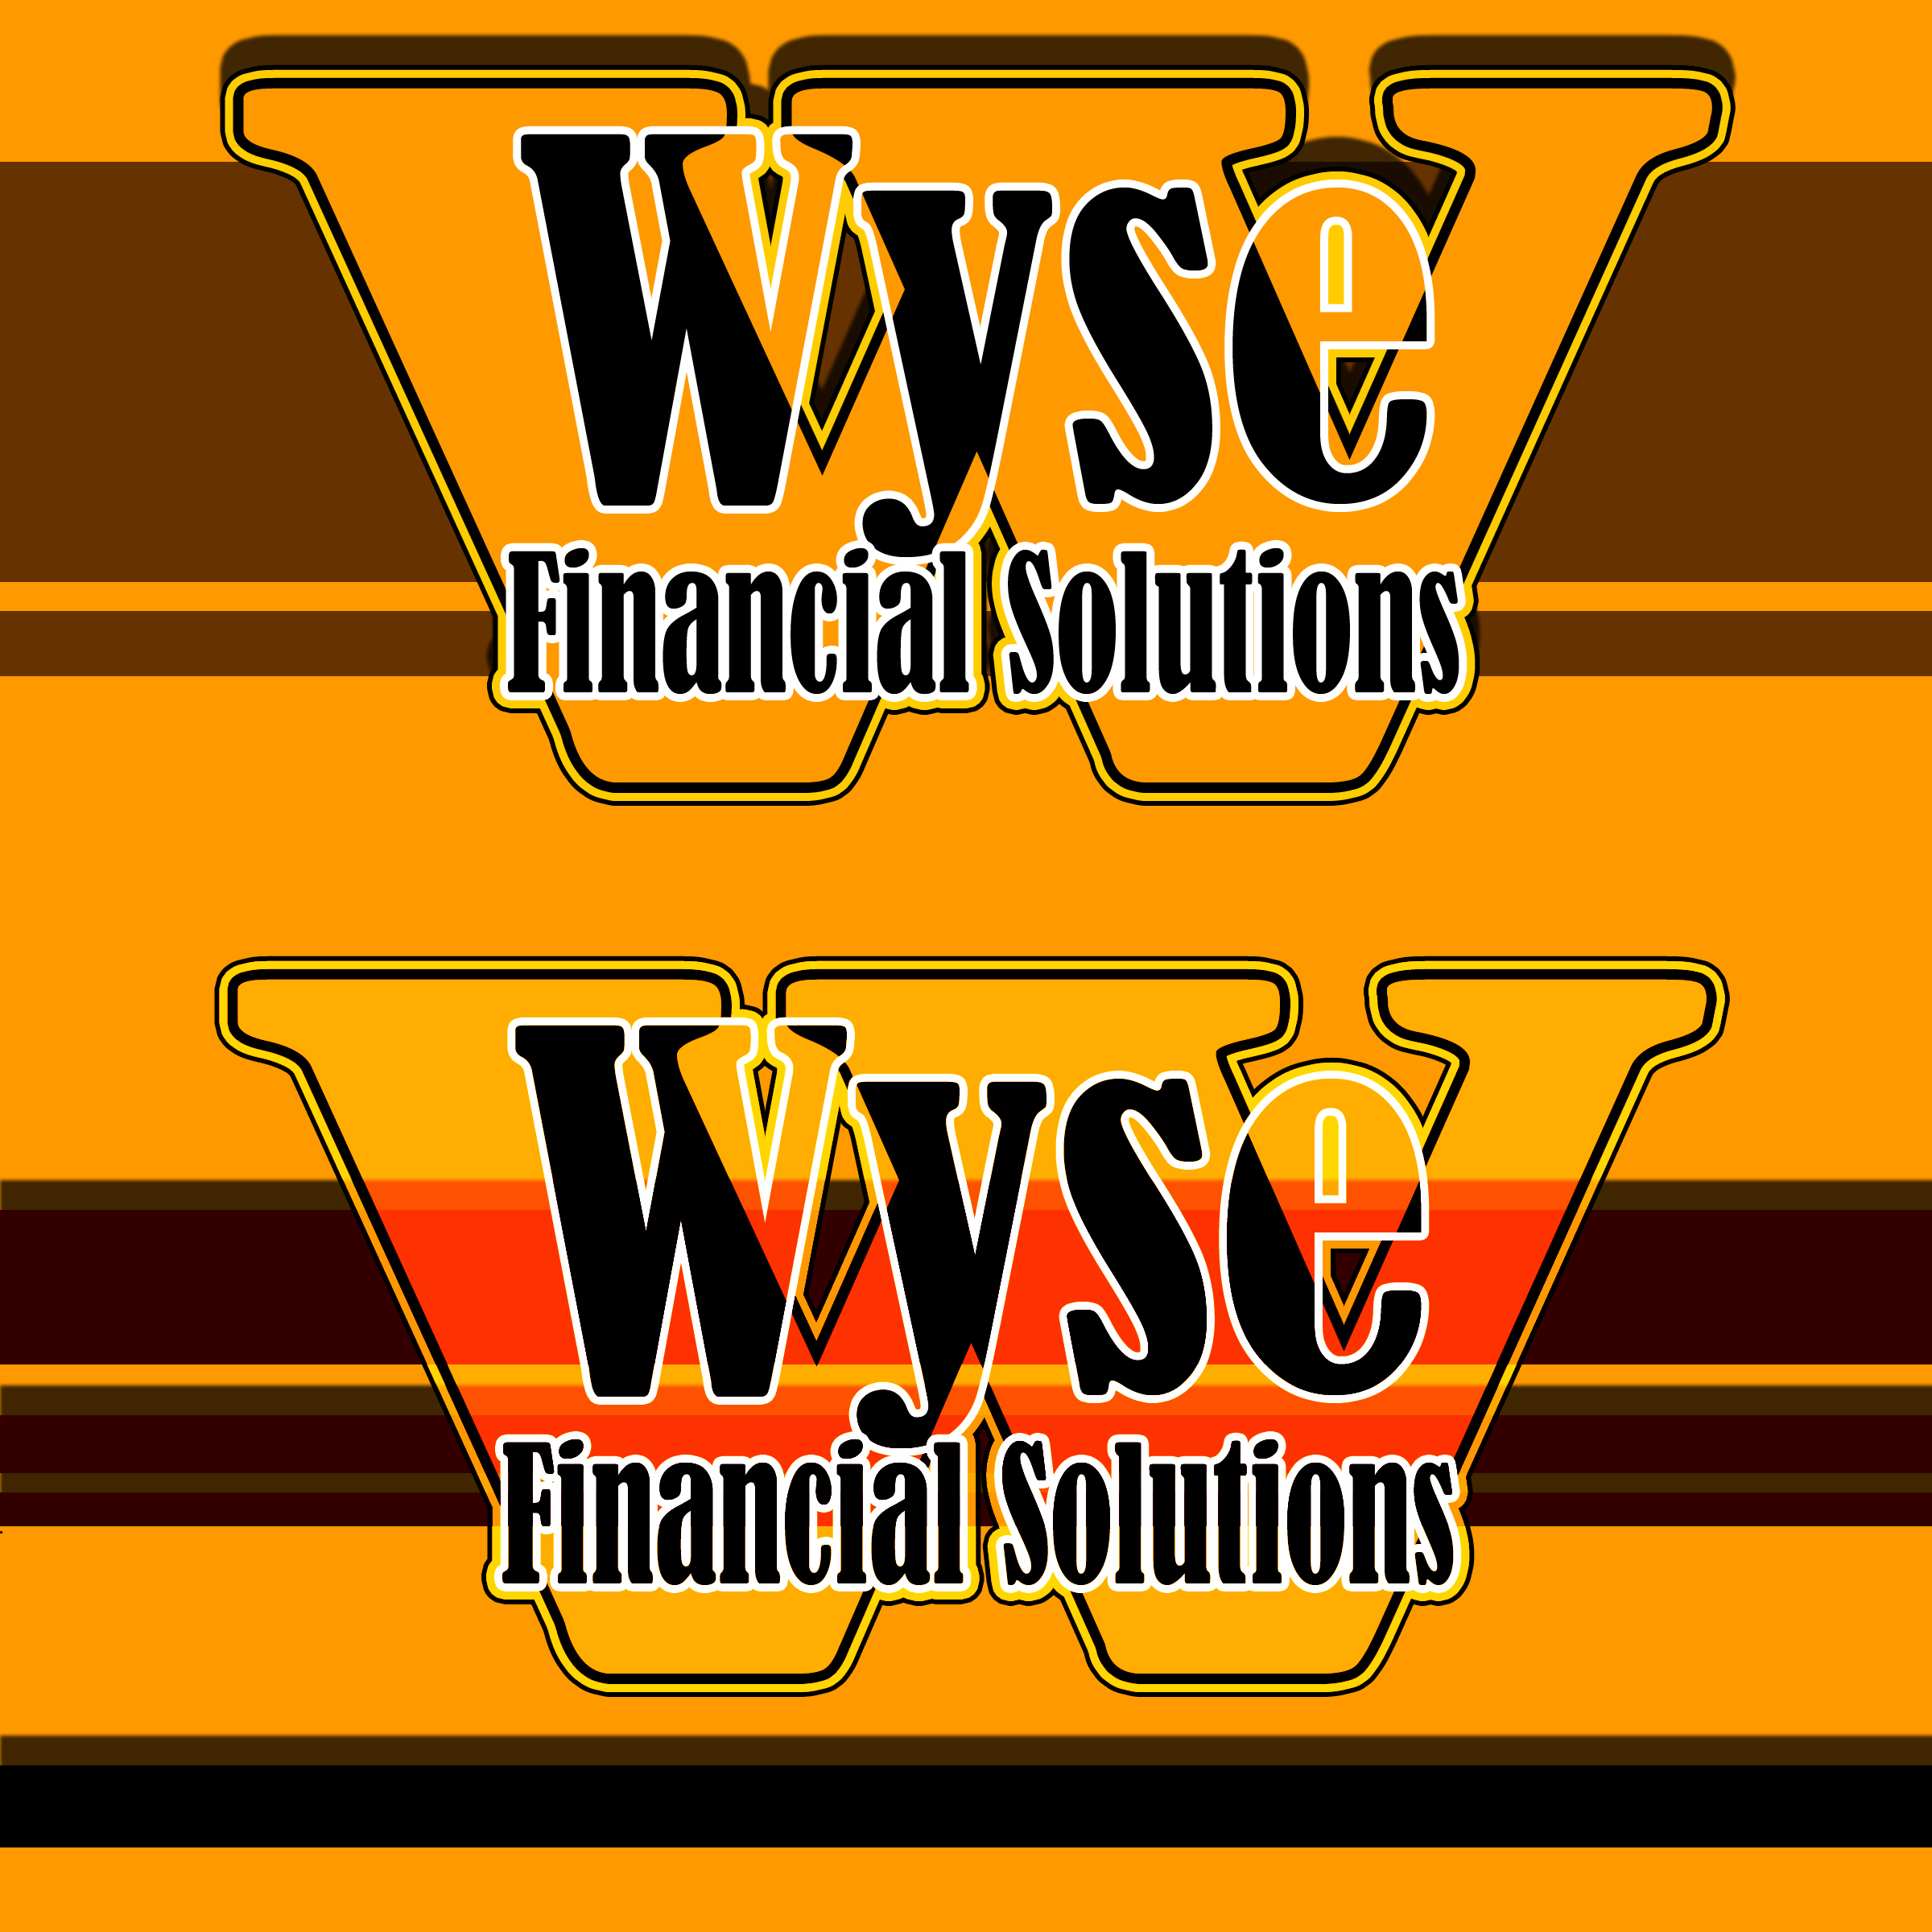 Logo Design by MITUCA ANDREI - Entry No. 19 in the Logo Design Contest Fun Logo Design for Wyse Financial Solutions.